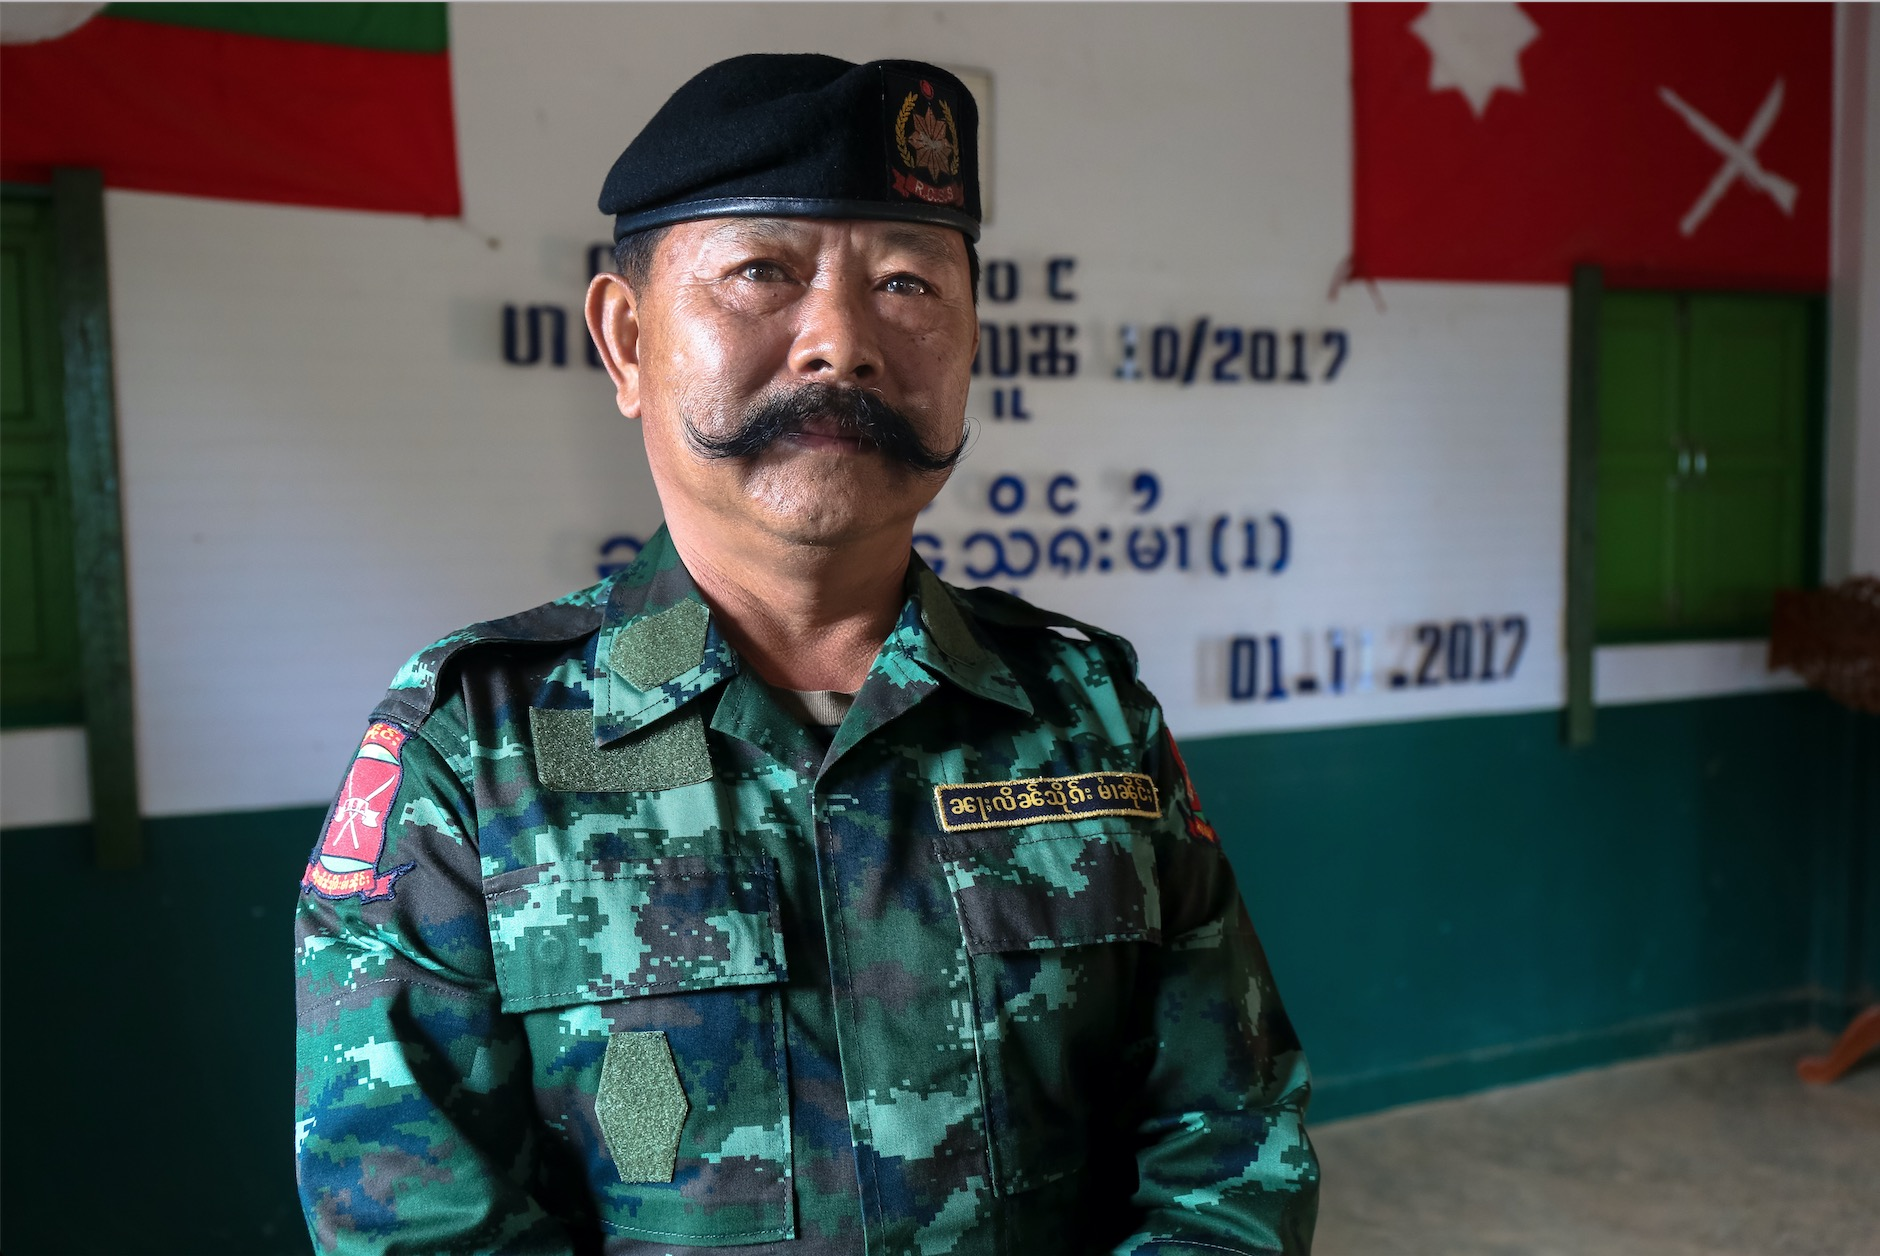 Shan State Army Commander in a Shan State IDP camp. November 2017